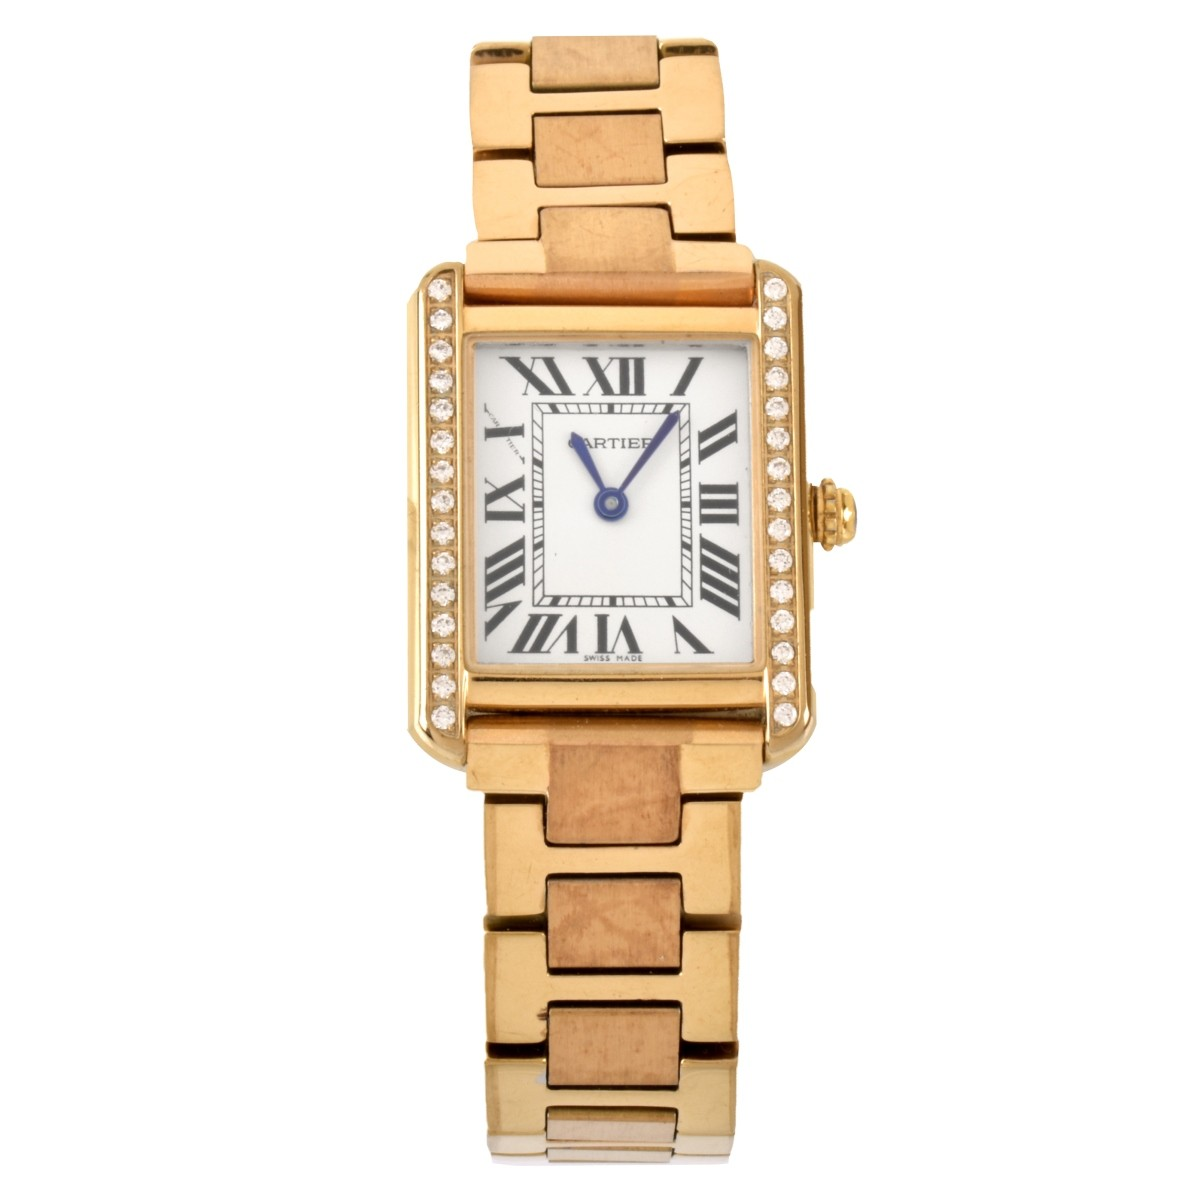 Cartier Replica Watch